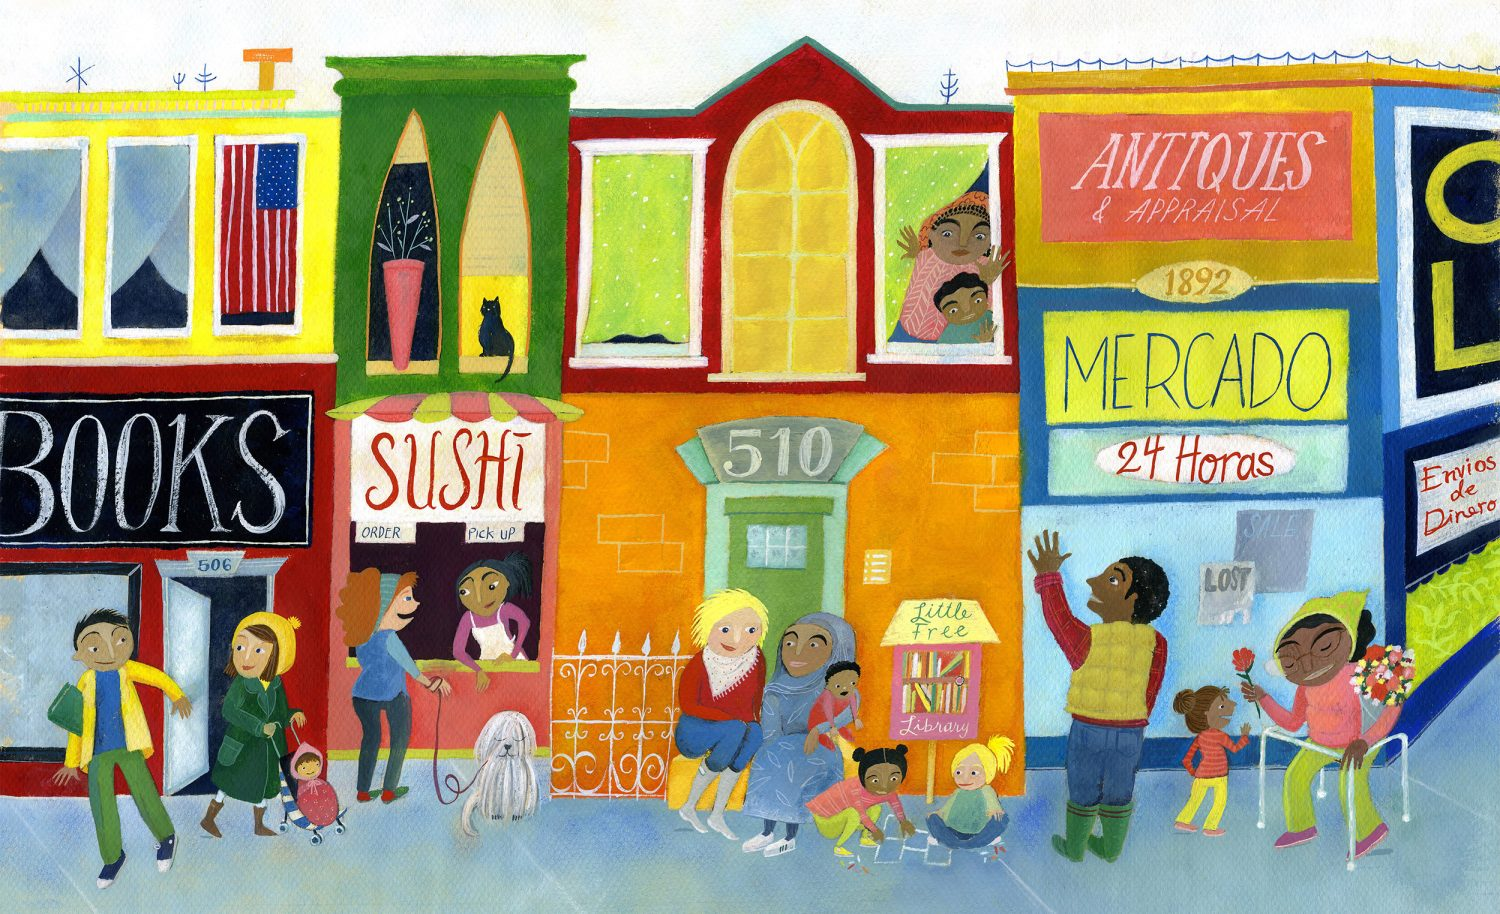 Mercado Street  © 2018 Aimee Hagerty Johnson. Gouache, acrylic, pastel, and ink.